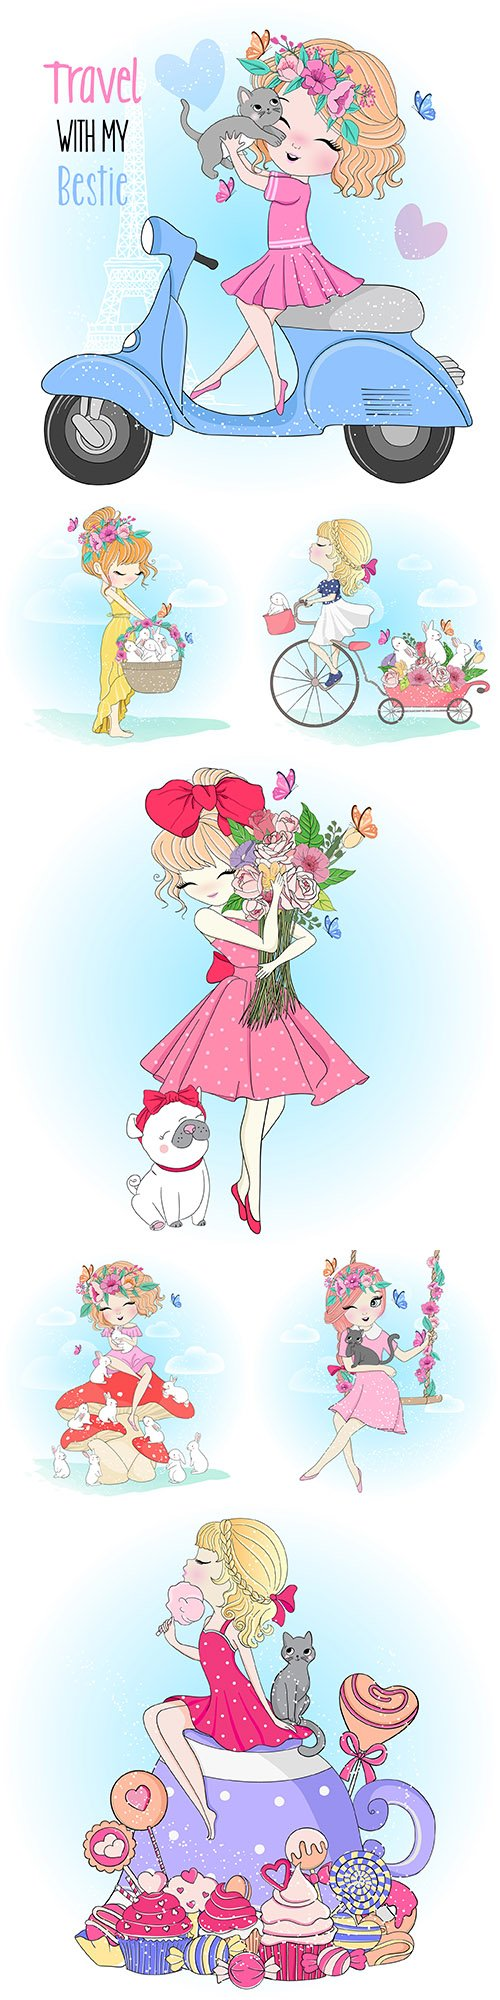 Cute girl with flowers and animals painted illustration